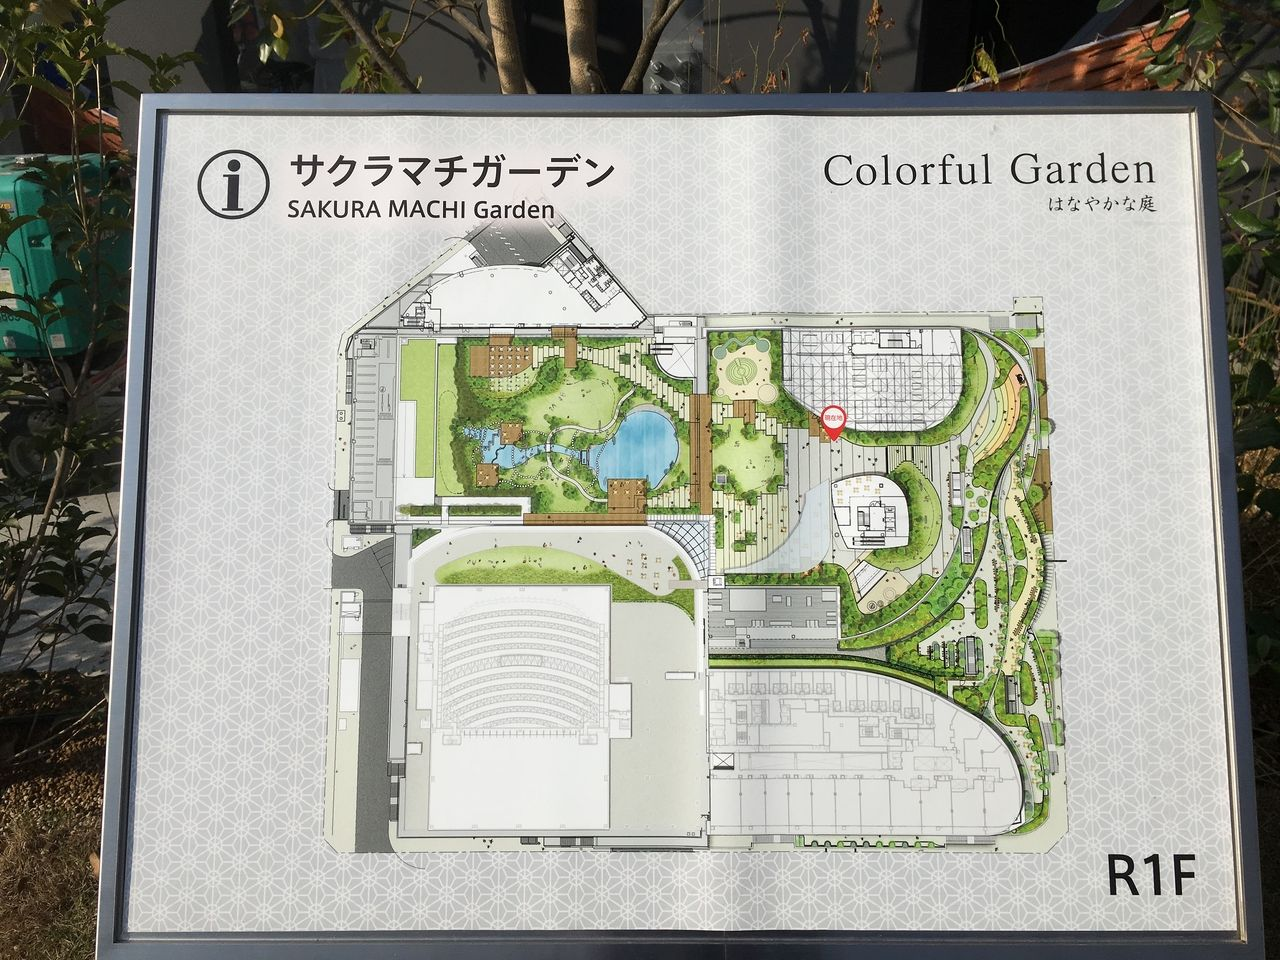 Colorful Garden(はなやかな庭)